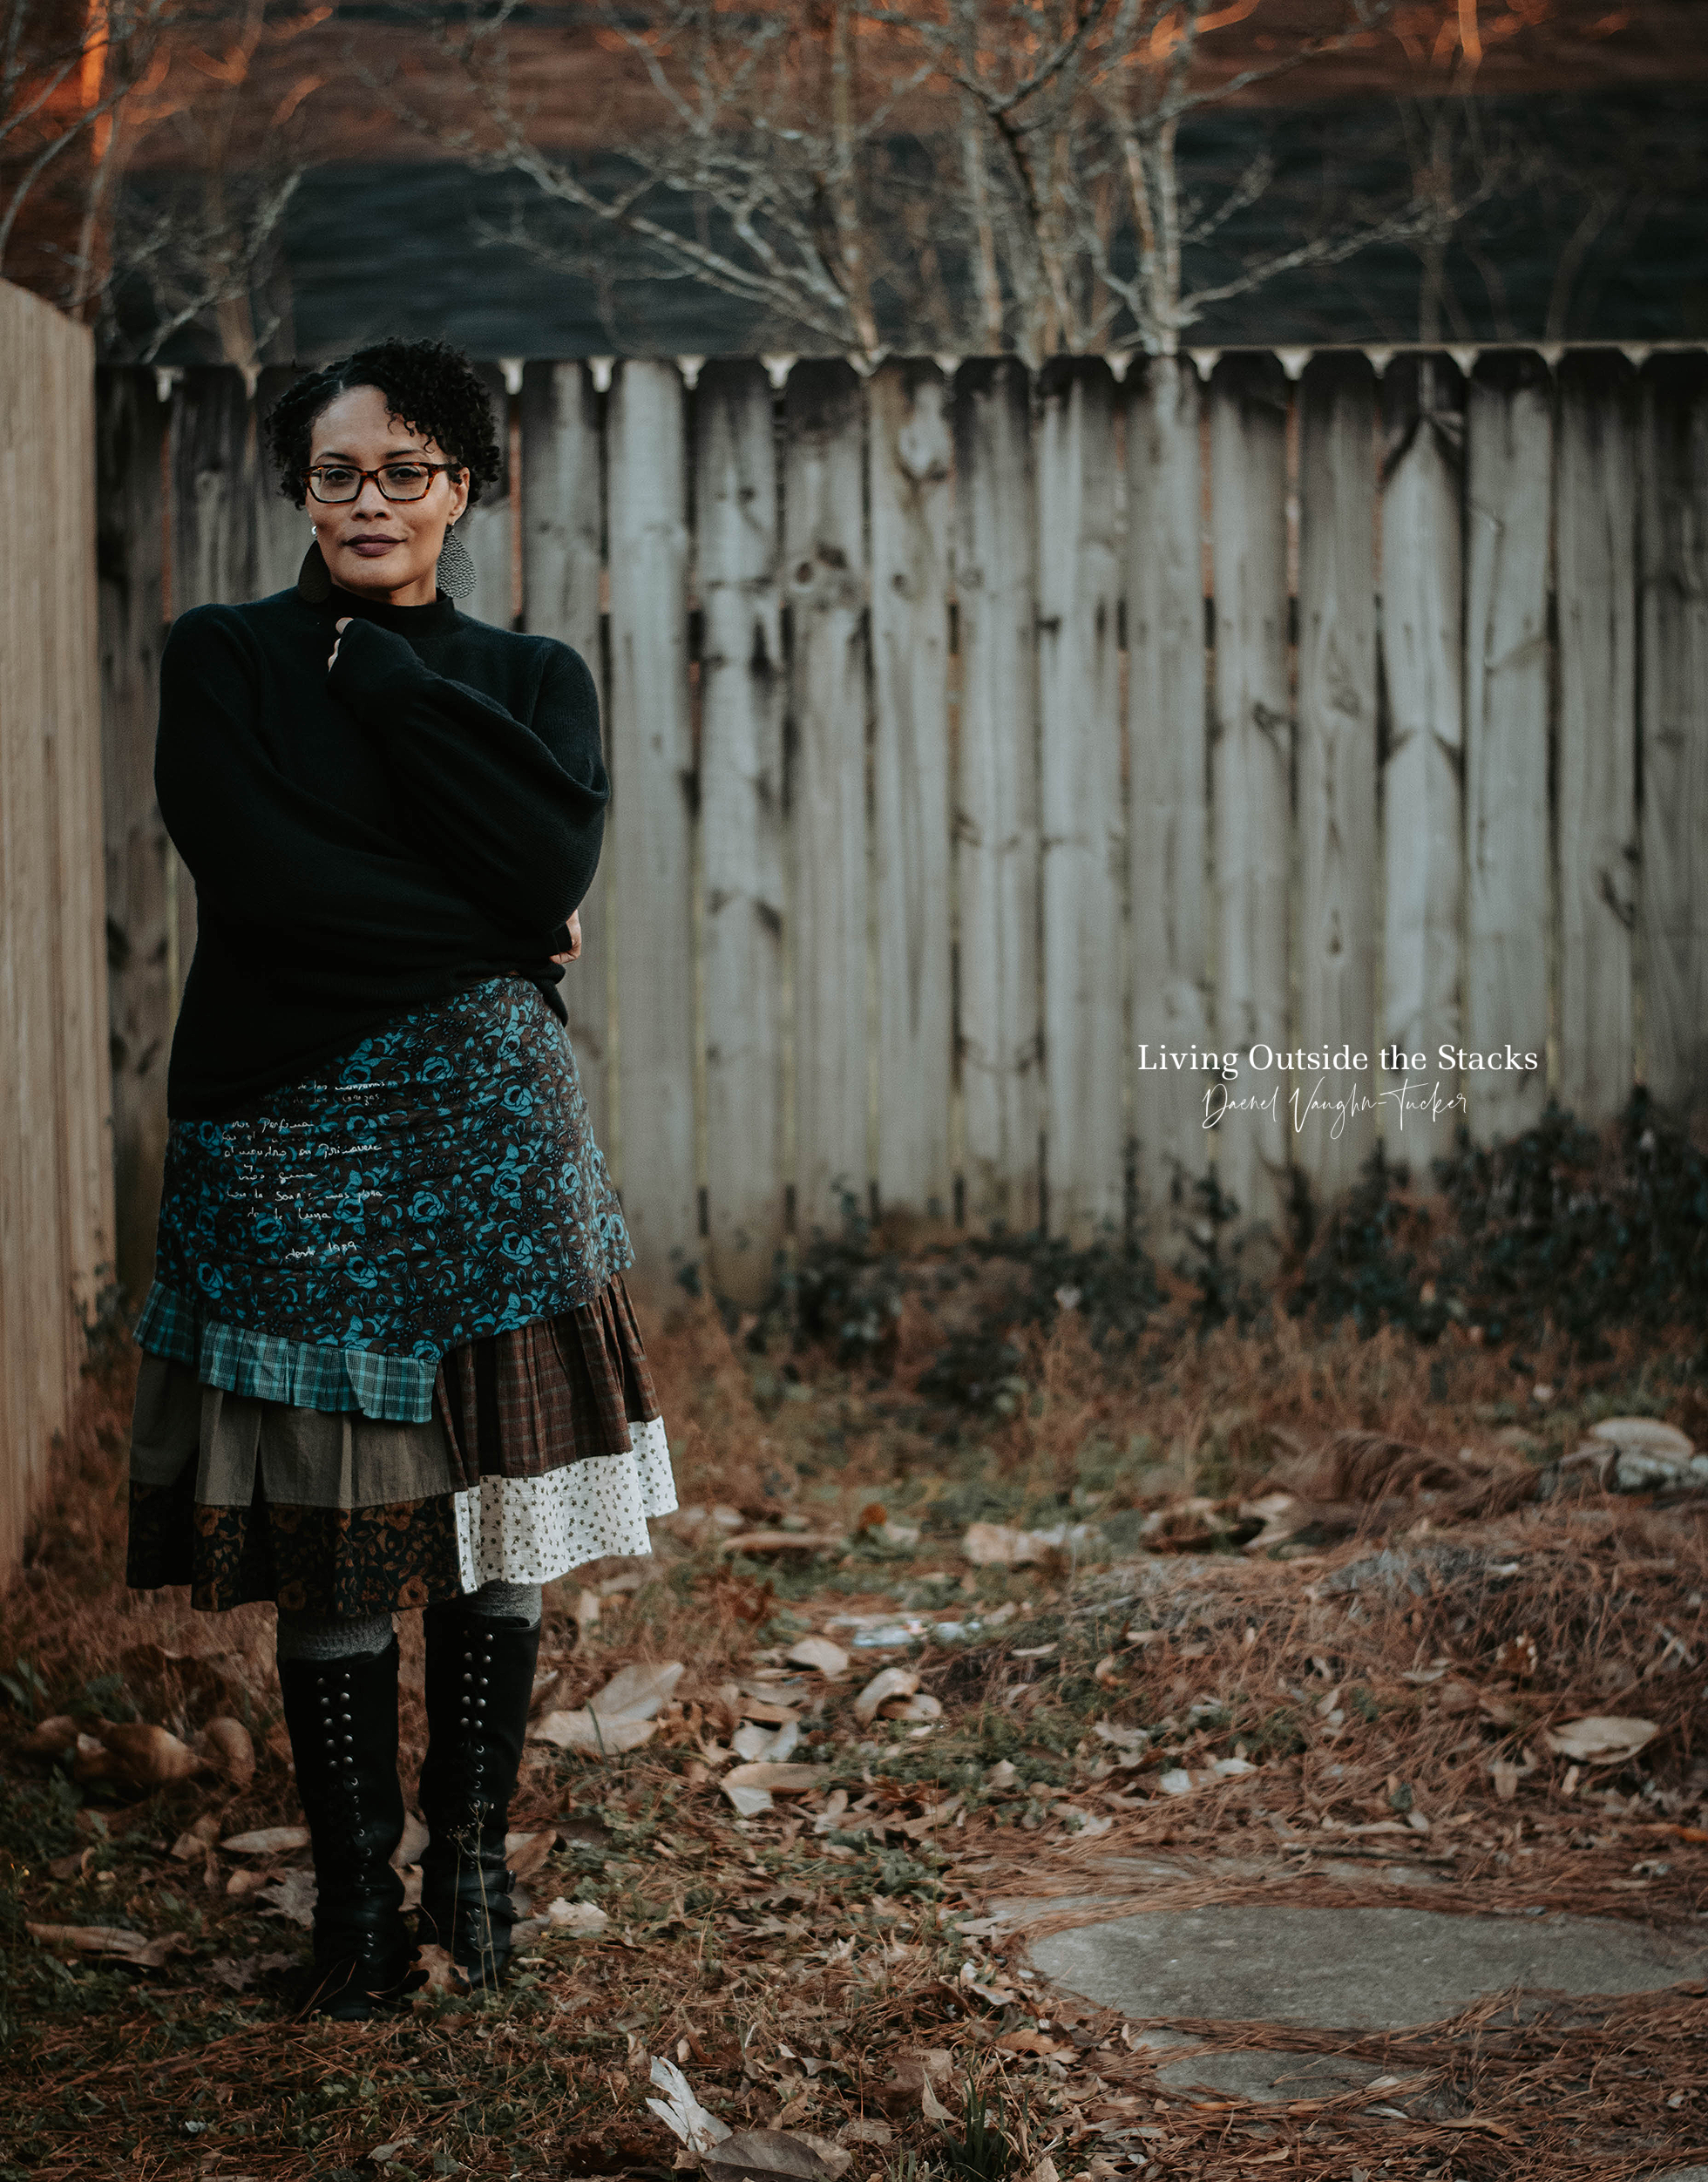 Black Turtleneck Ian Mosh Skirt and Black Boots {living outside the stacks} Daenel T